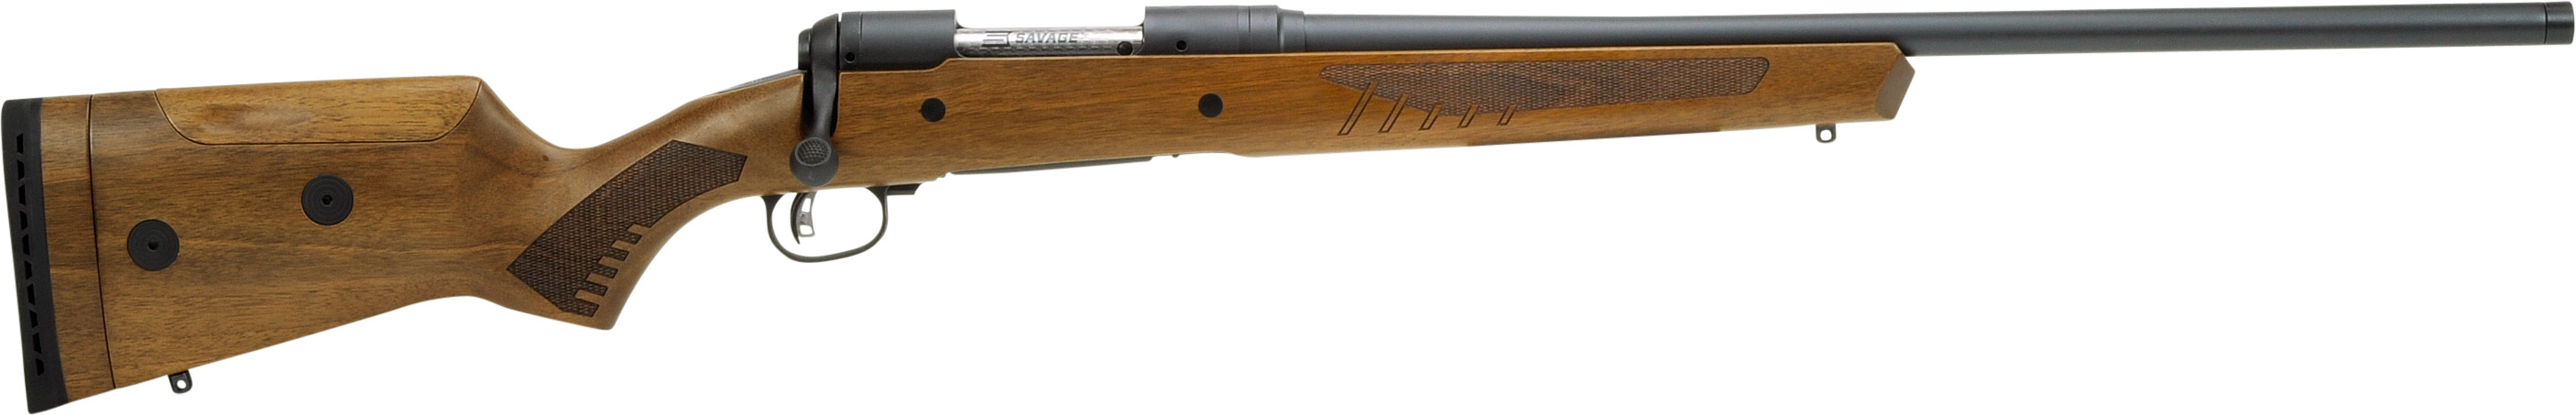 Savage Arms 110 Classic 7mm Rem Mag